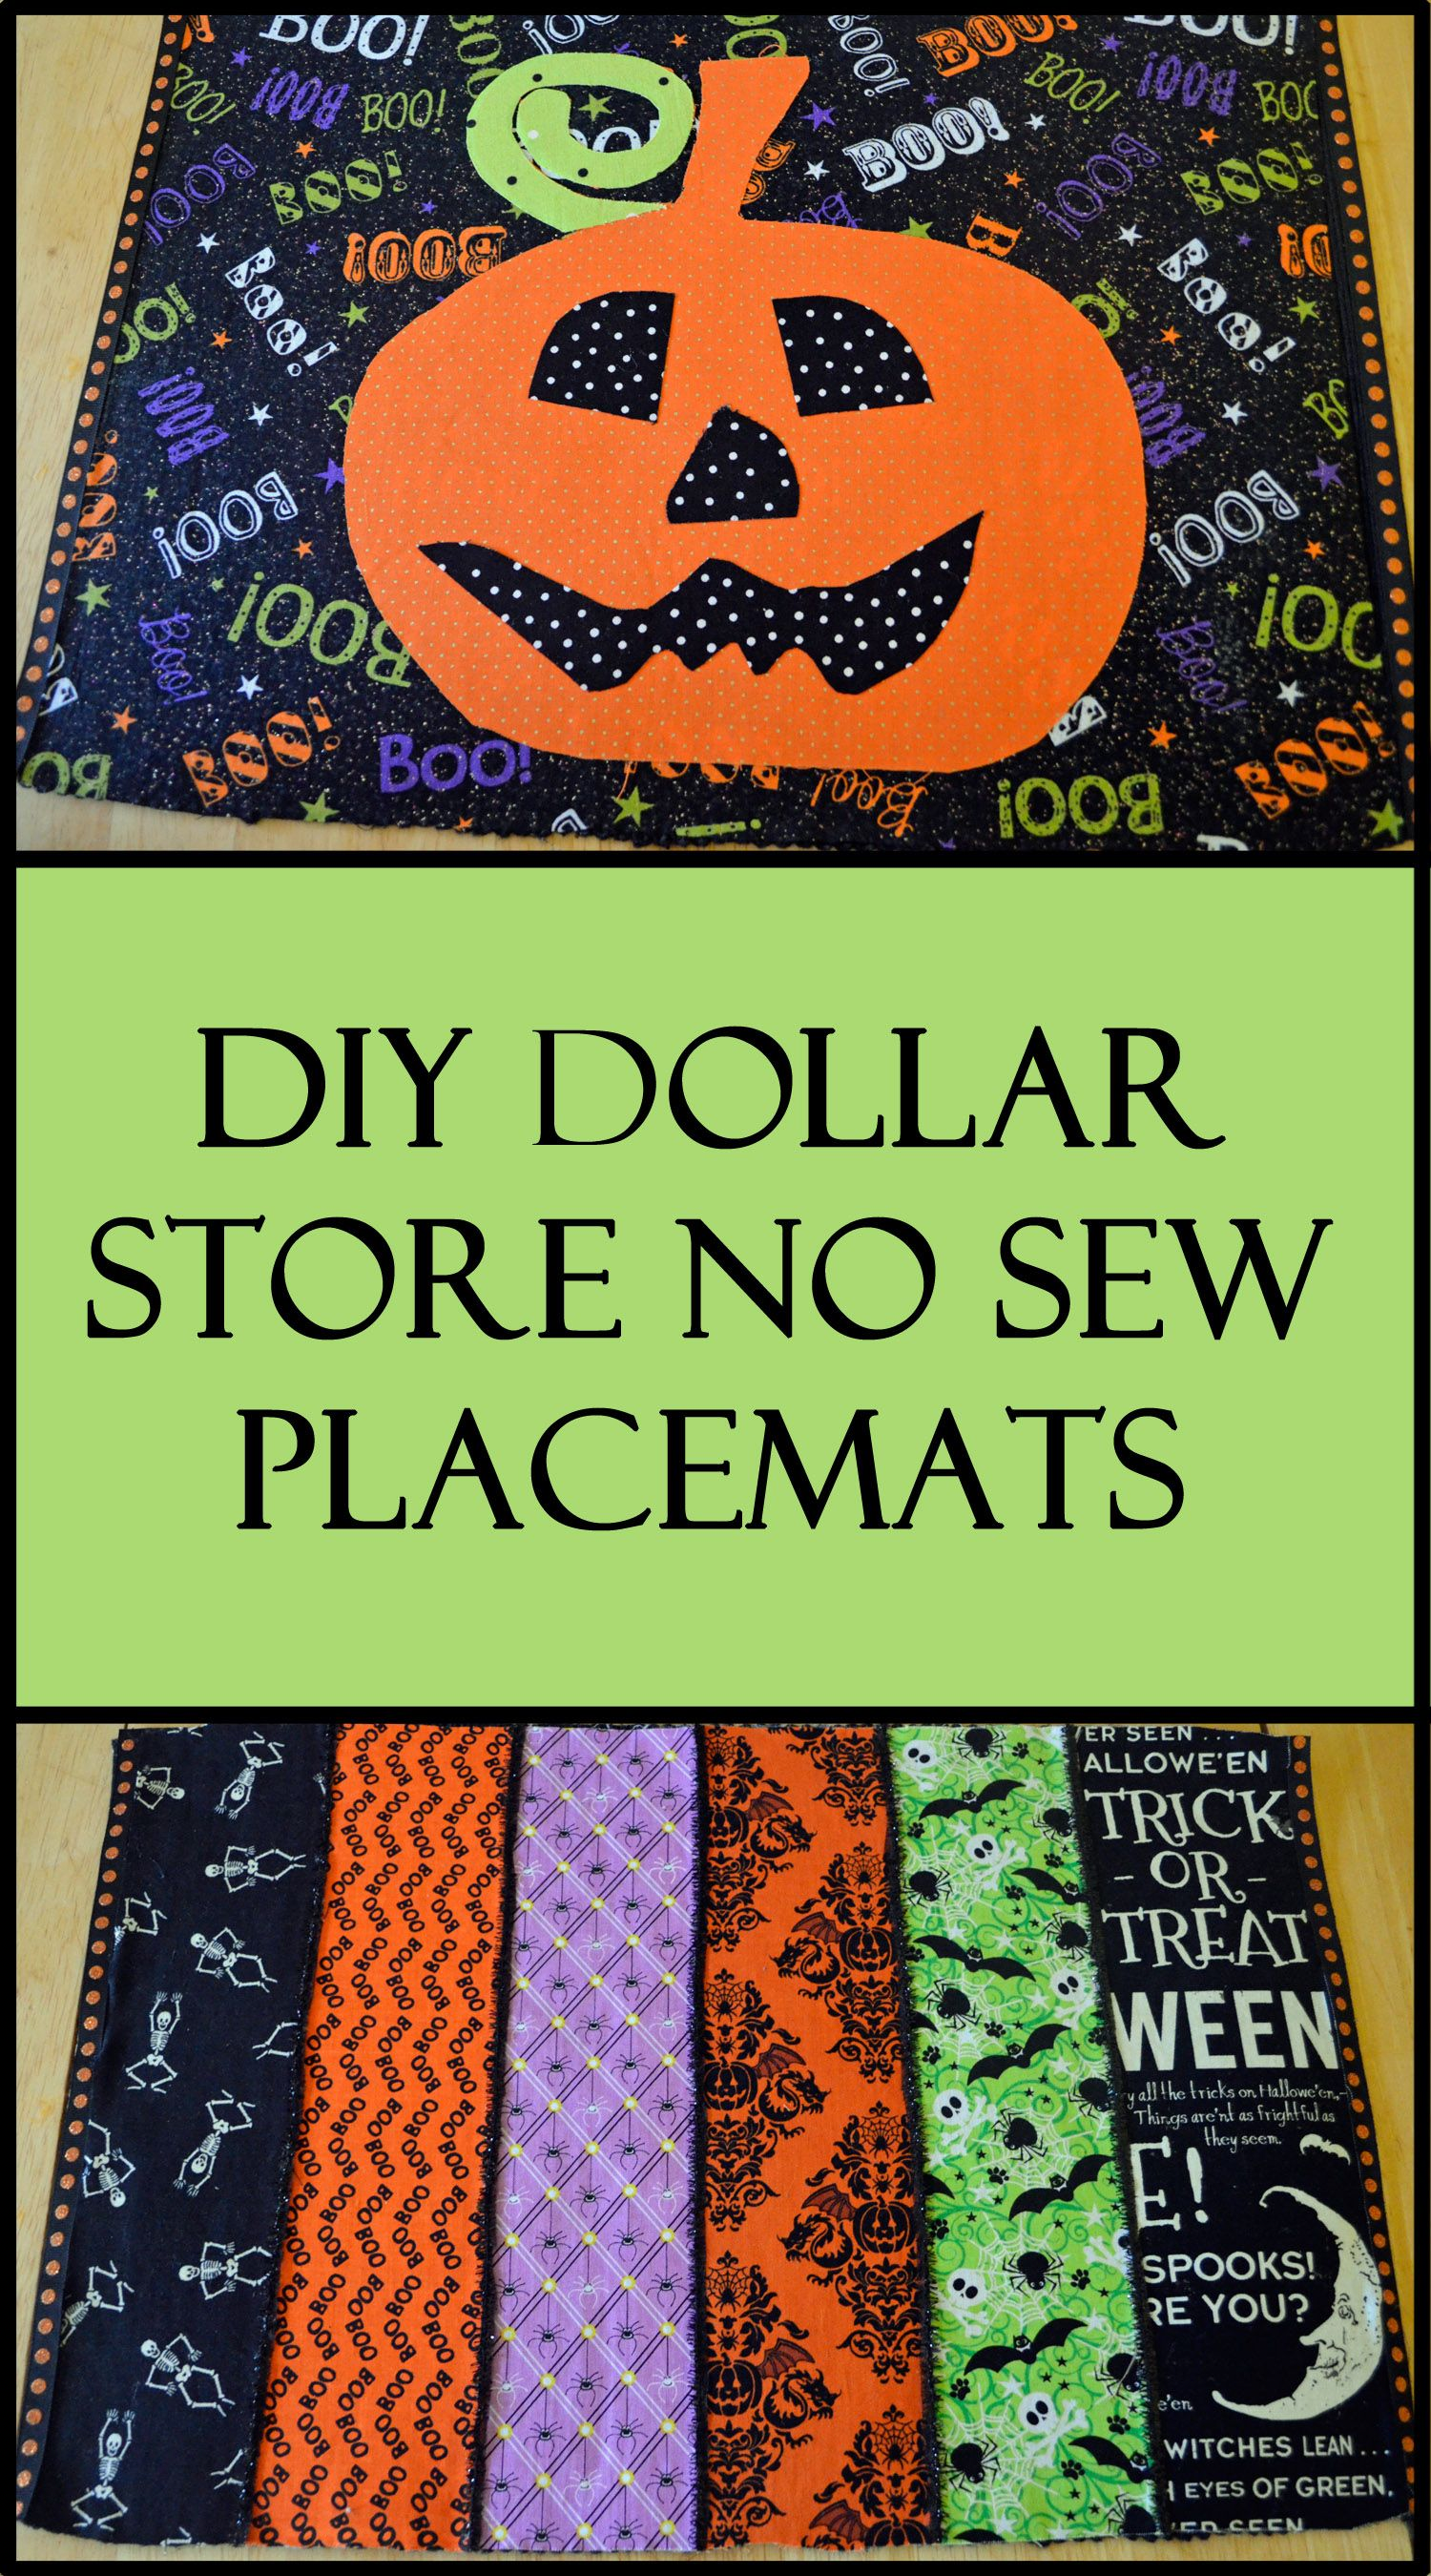 DIY Dollar Store No Sew Halloween Placemats - DIY Dollar Store No Sew Halloween Placemats Dollar Stores, Store